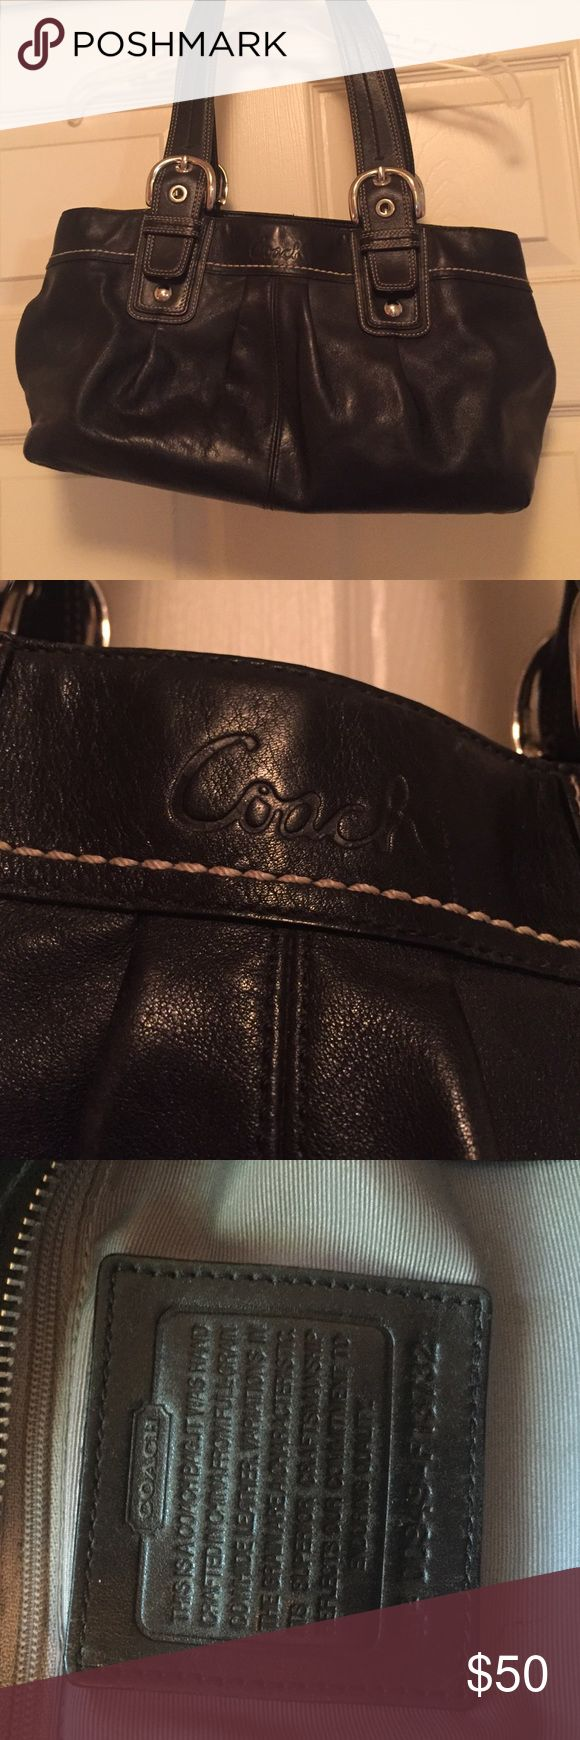 Black Coach Satchel In great condition. Lining has a few small stains from use but overall this bag is in great condition and has many years left. 14 inches long. 8 inches deep from top of bag and from the handle drop its 18 inches. Coach Bags Satchels